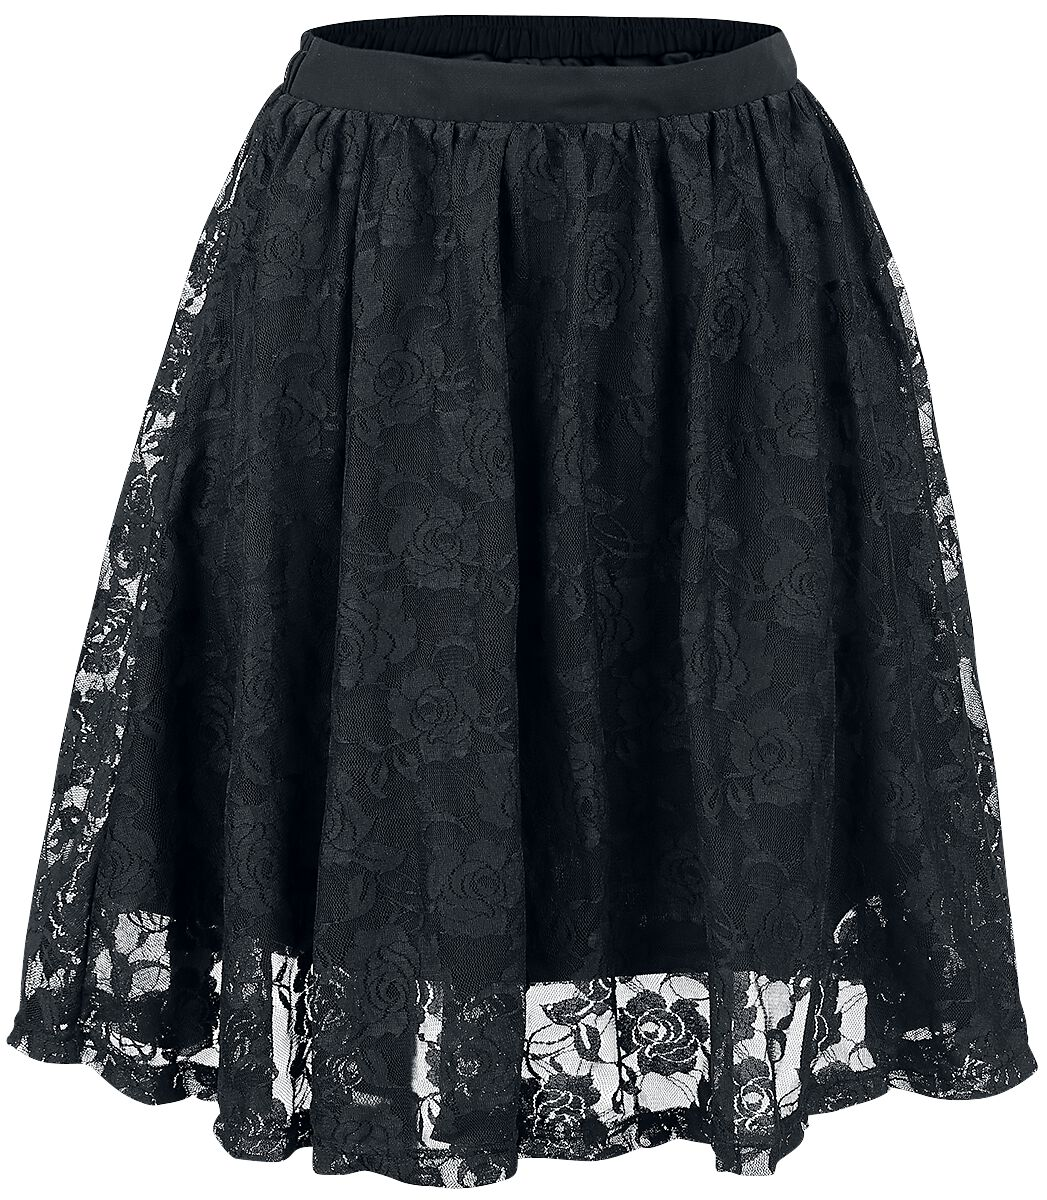 Image of   Forplay Lace Covered Skirt Nederdel sort